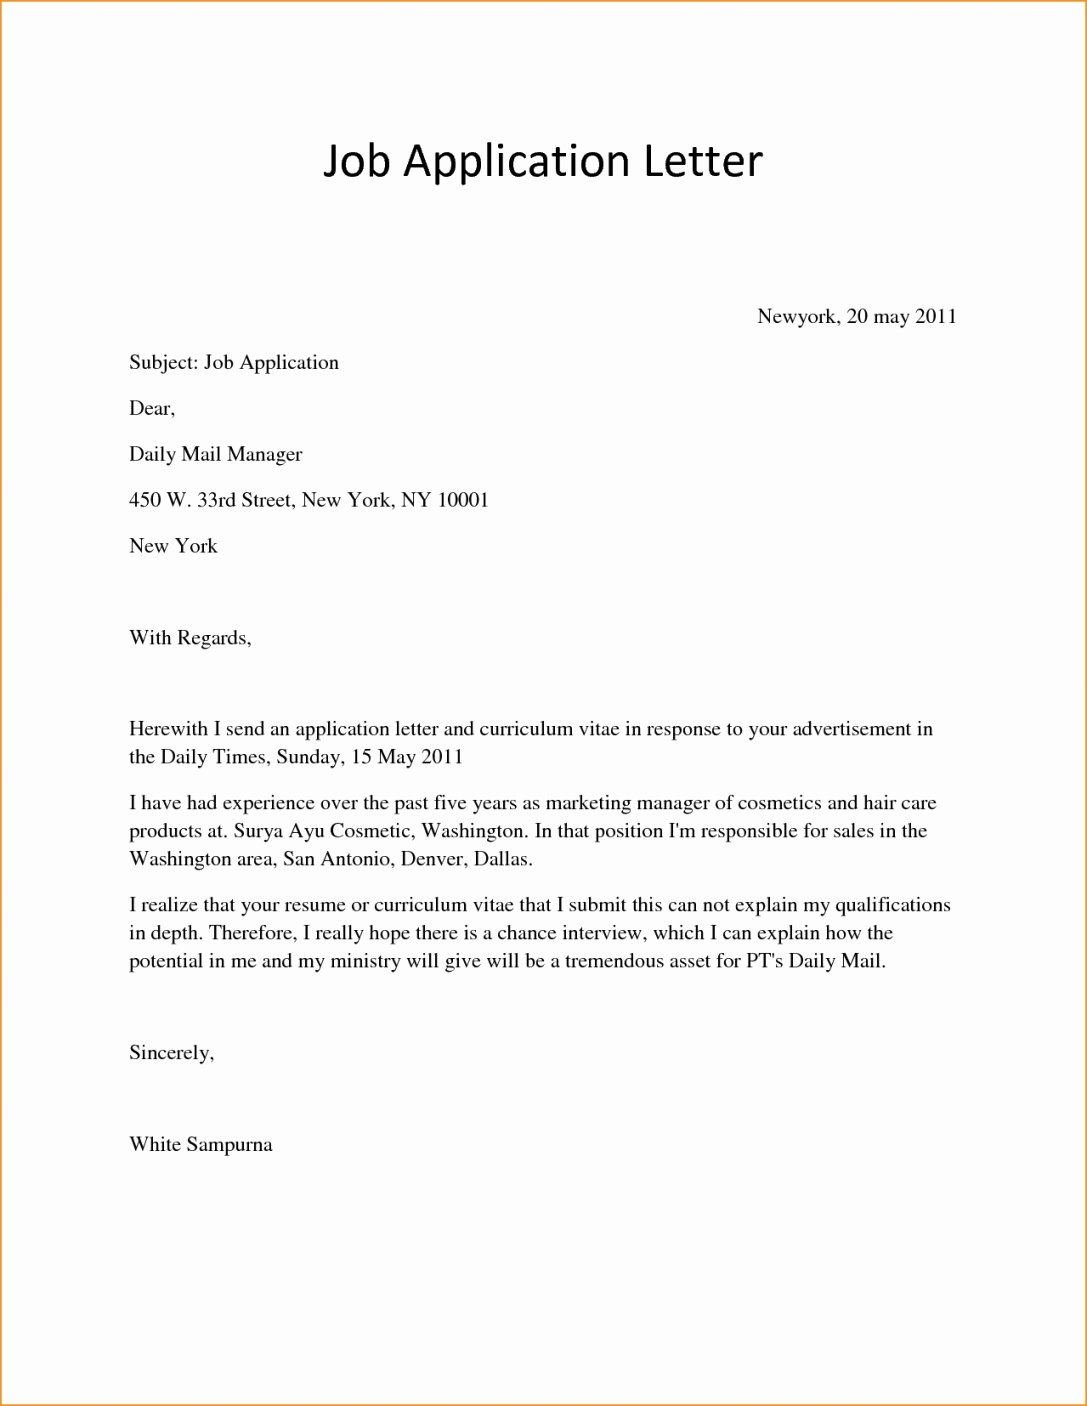 Simple Resume Cover Letter Sample Beautiful Kairos Letters Examples Wemaketotem